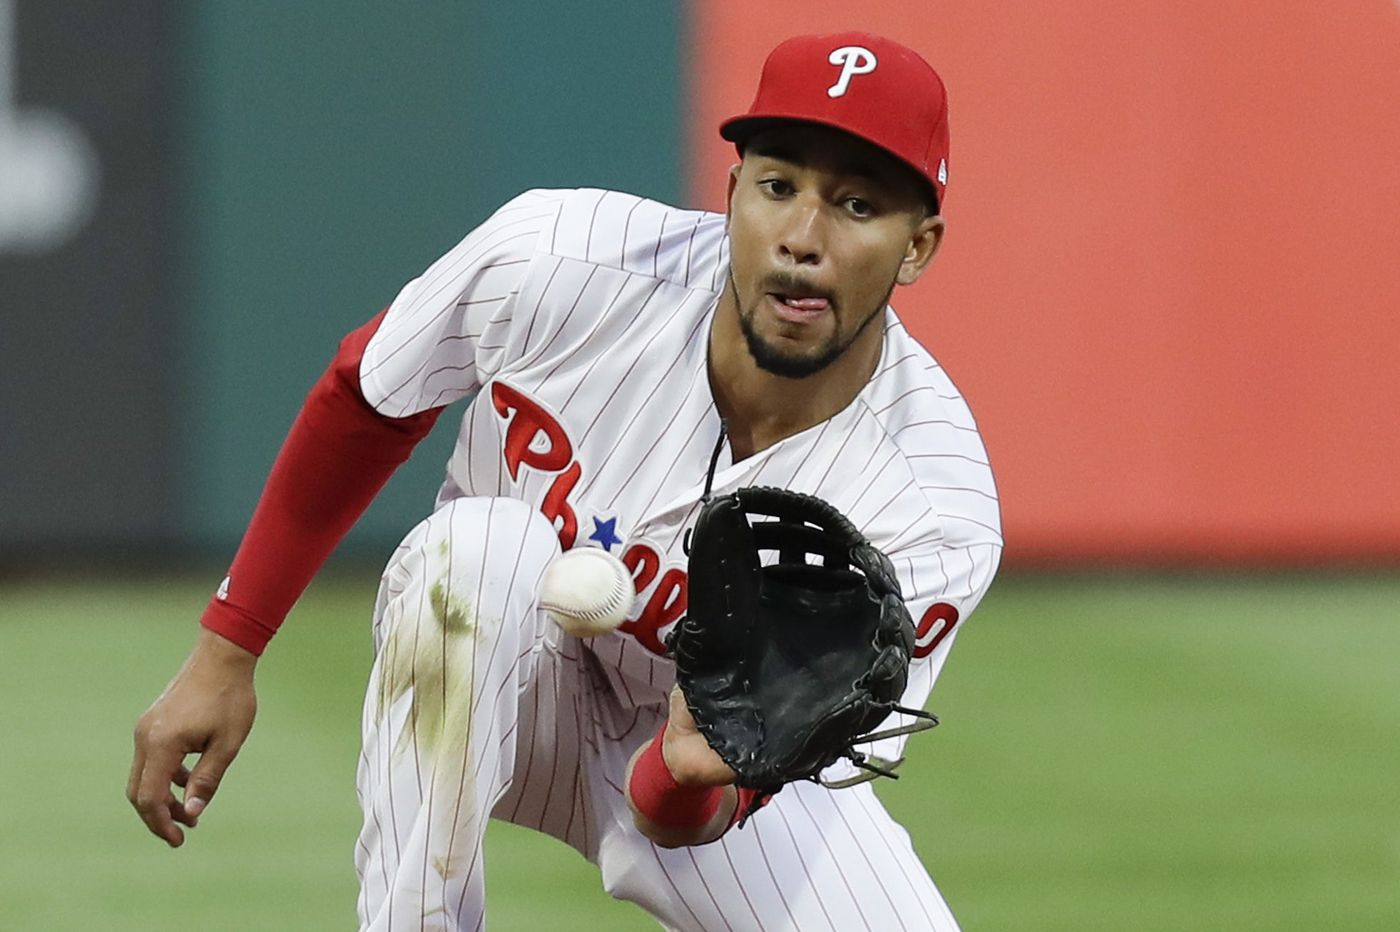 Phillies activate J.P. Crawford from disabled list, likely pushing Scott Kingery back to utility role